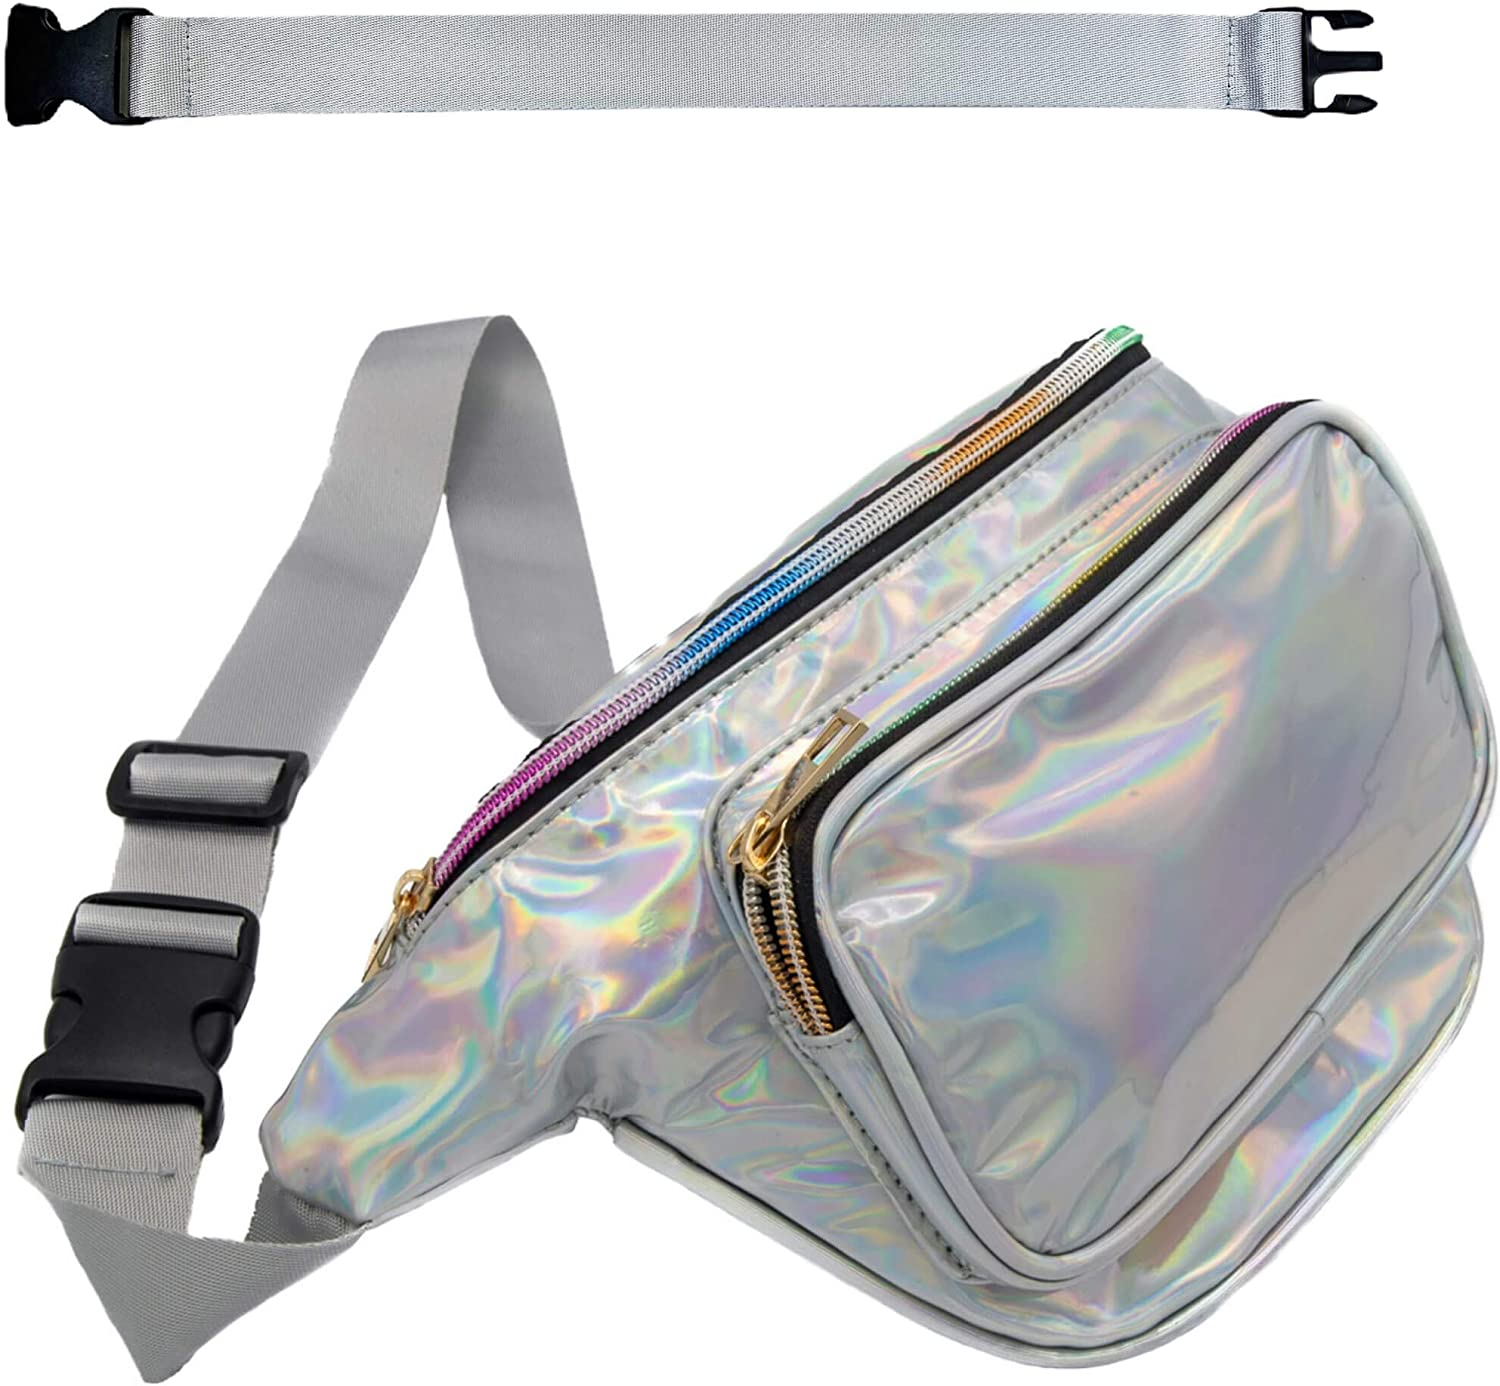 RedOrbis Fanny Packs for Women with Extender - Holographic Fanny Pack for Outdoor Sports Workout Casual Travel Hiking - Plus Size Waist Adjustable Belt Plus Extra Strap - 3 Pockets Water-Resistant